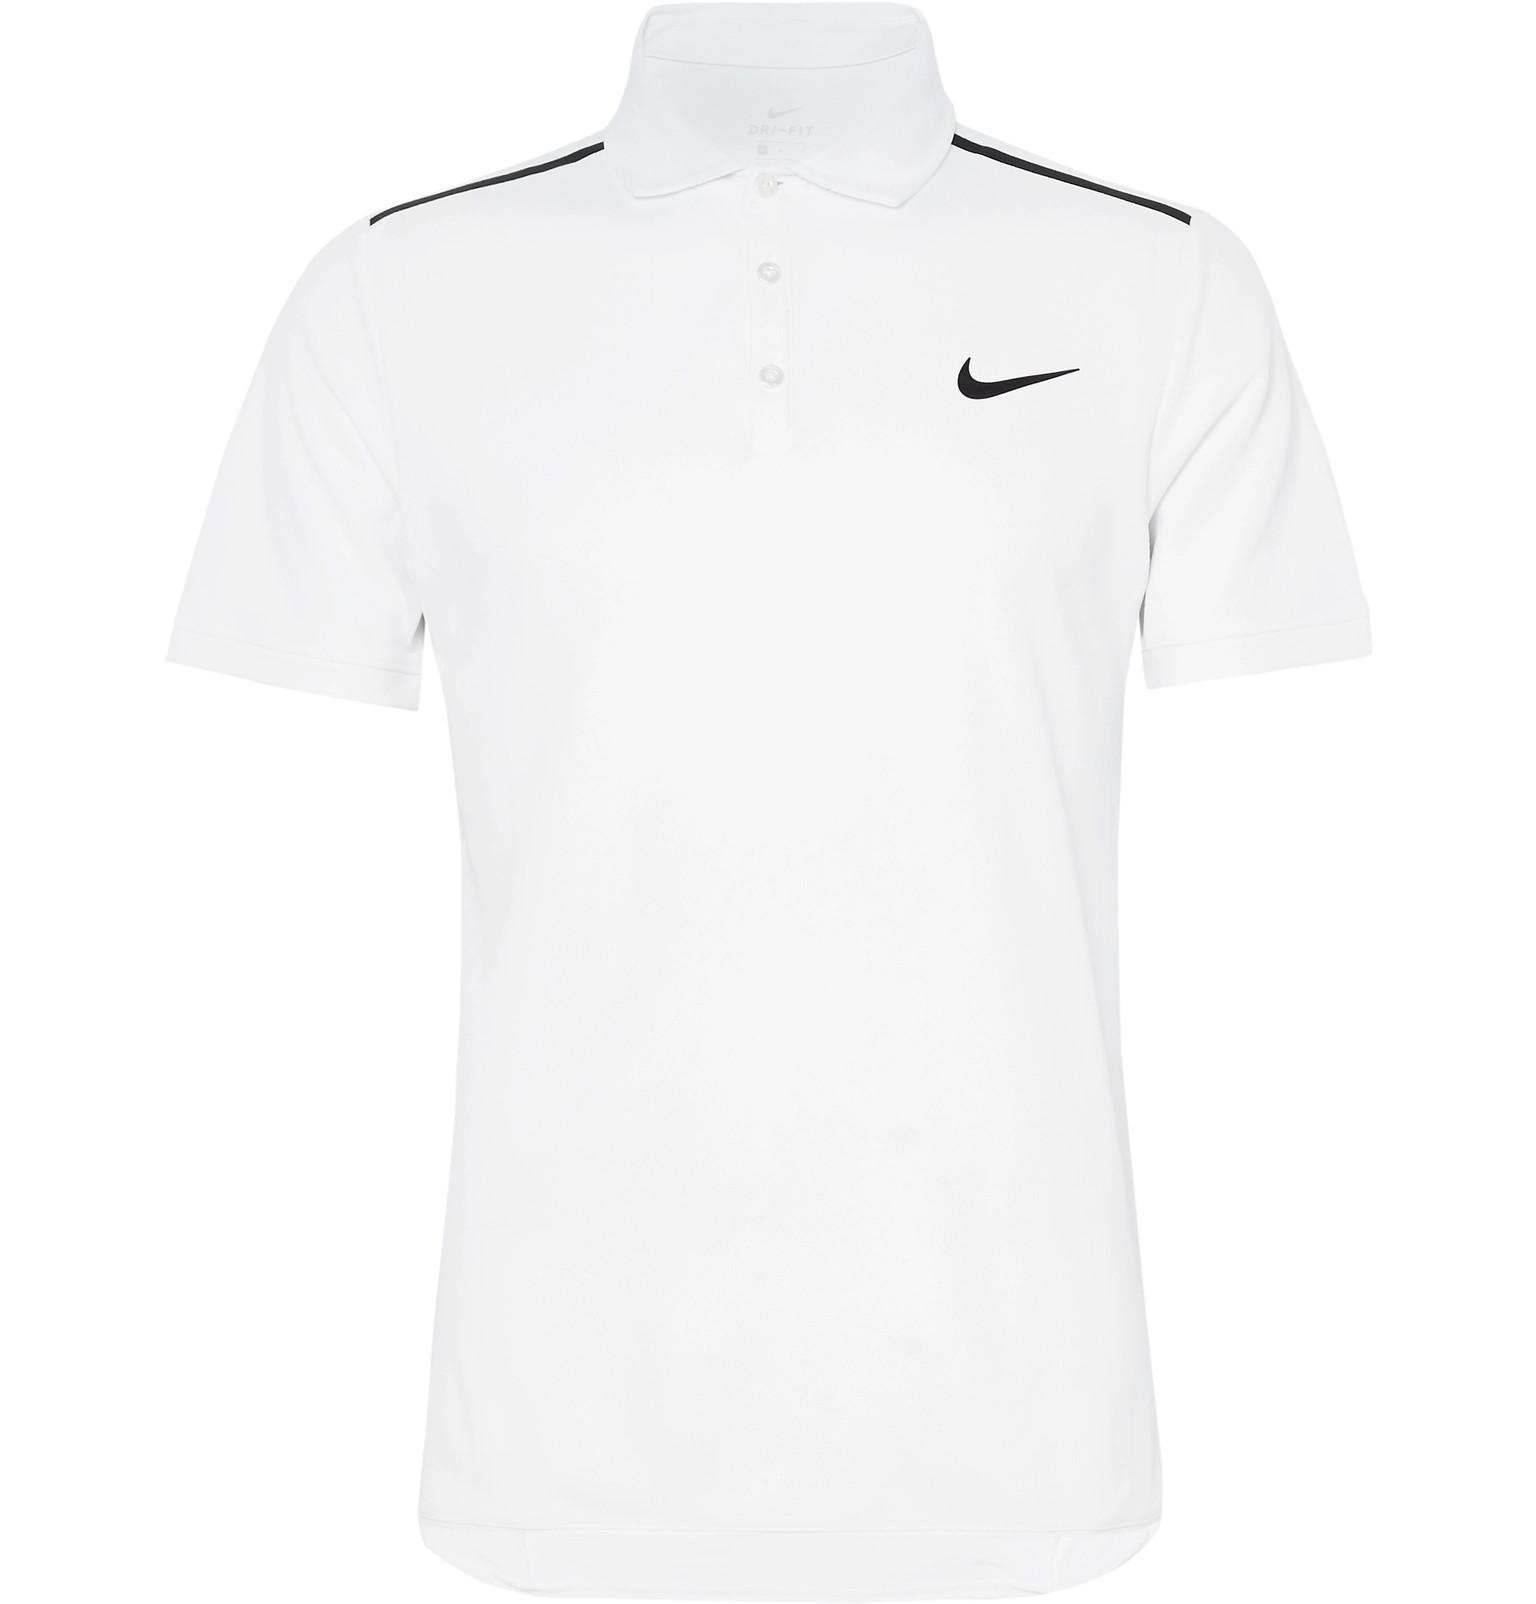 421088d5a06 Nike White Nikecourt Dry Advantage Dri-fit Piqué Tennis Polo Shirt for men